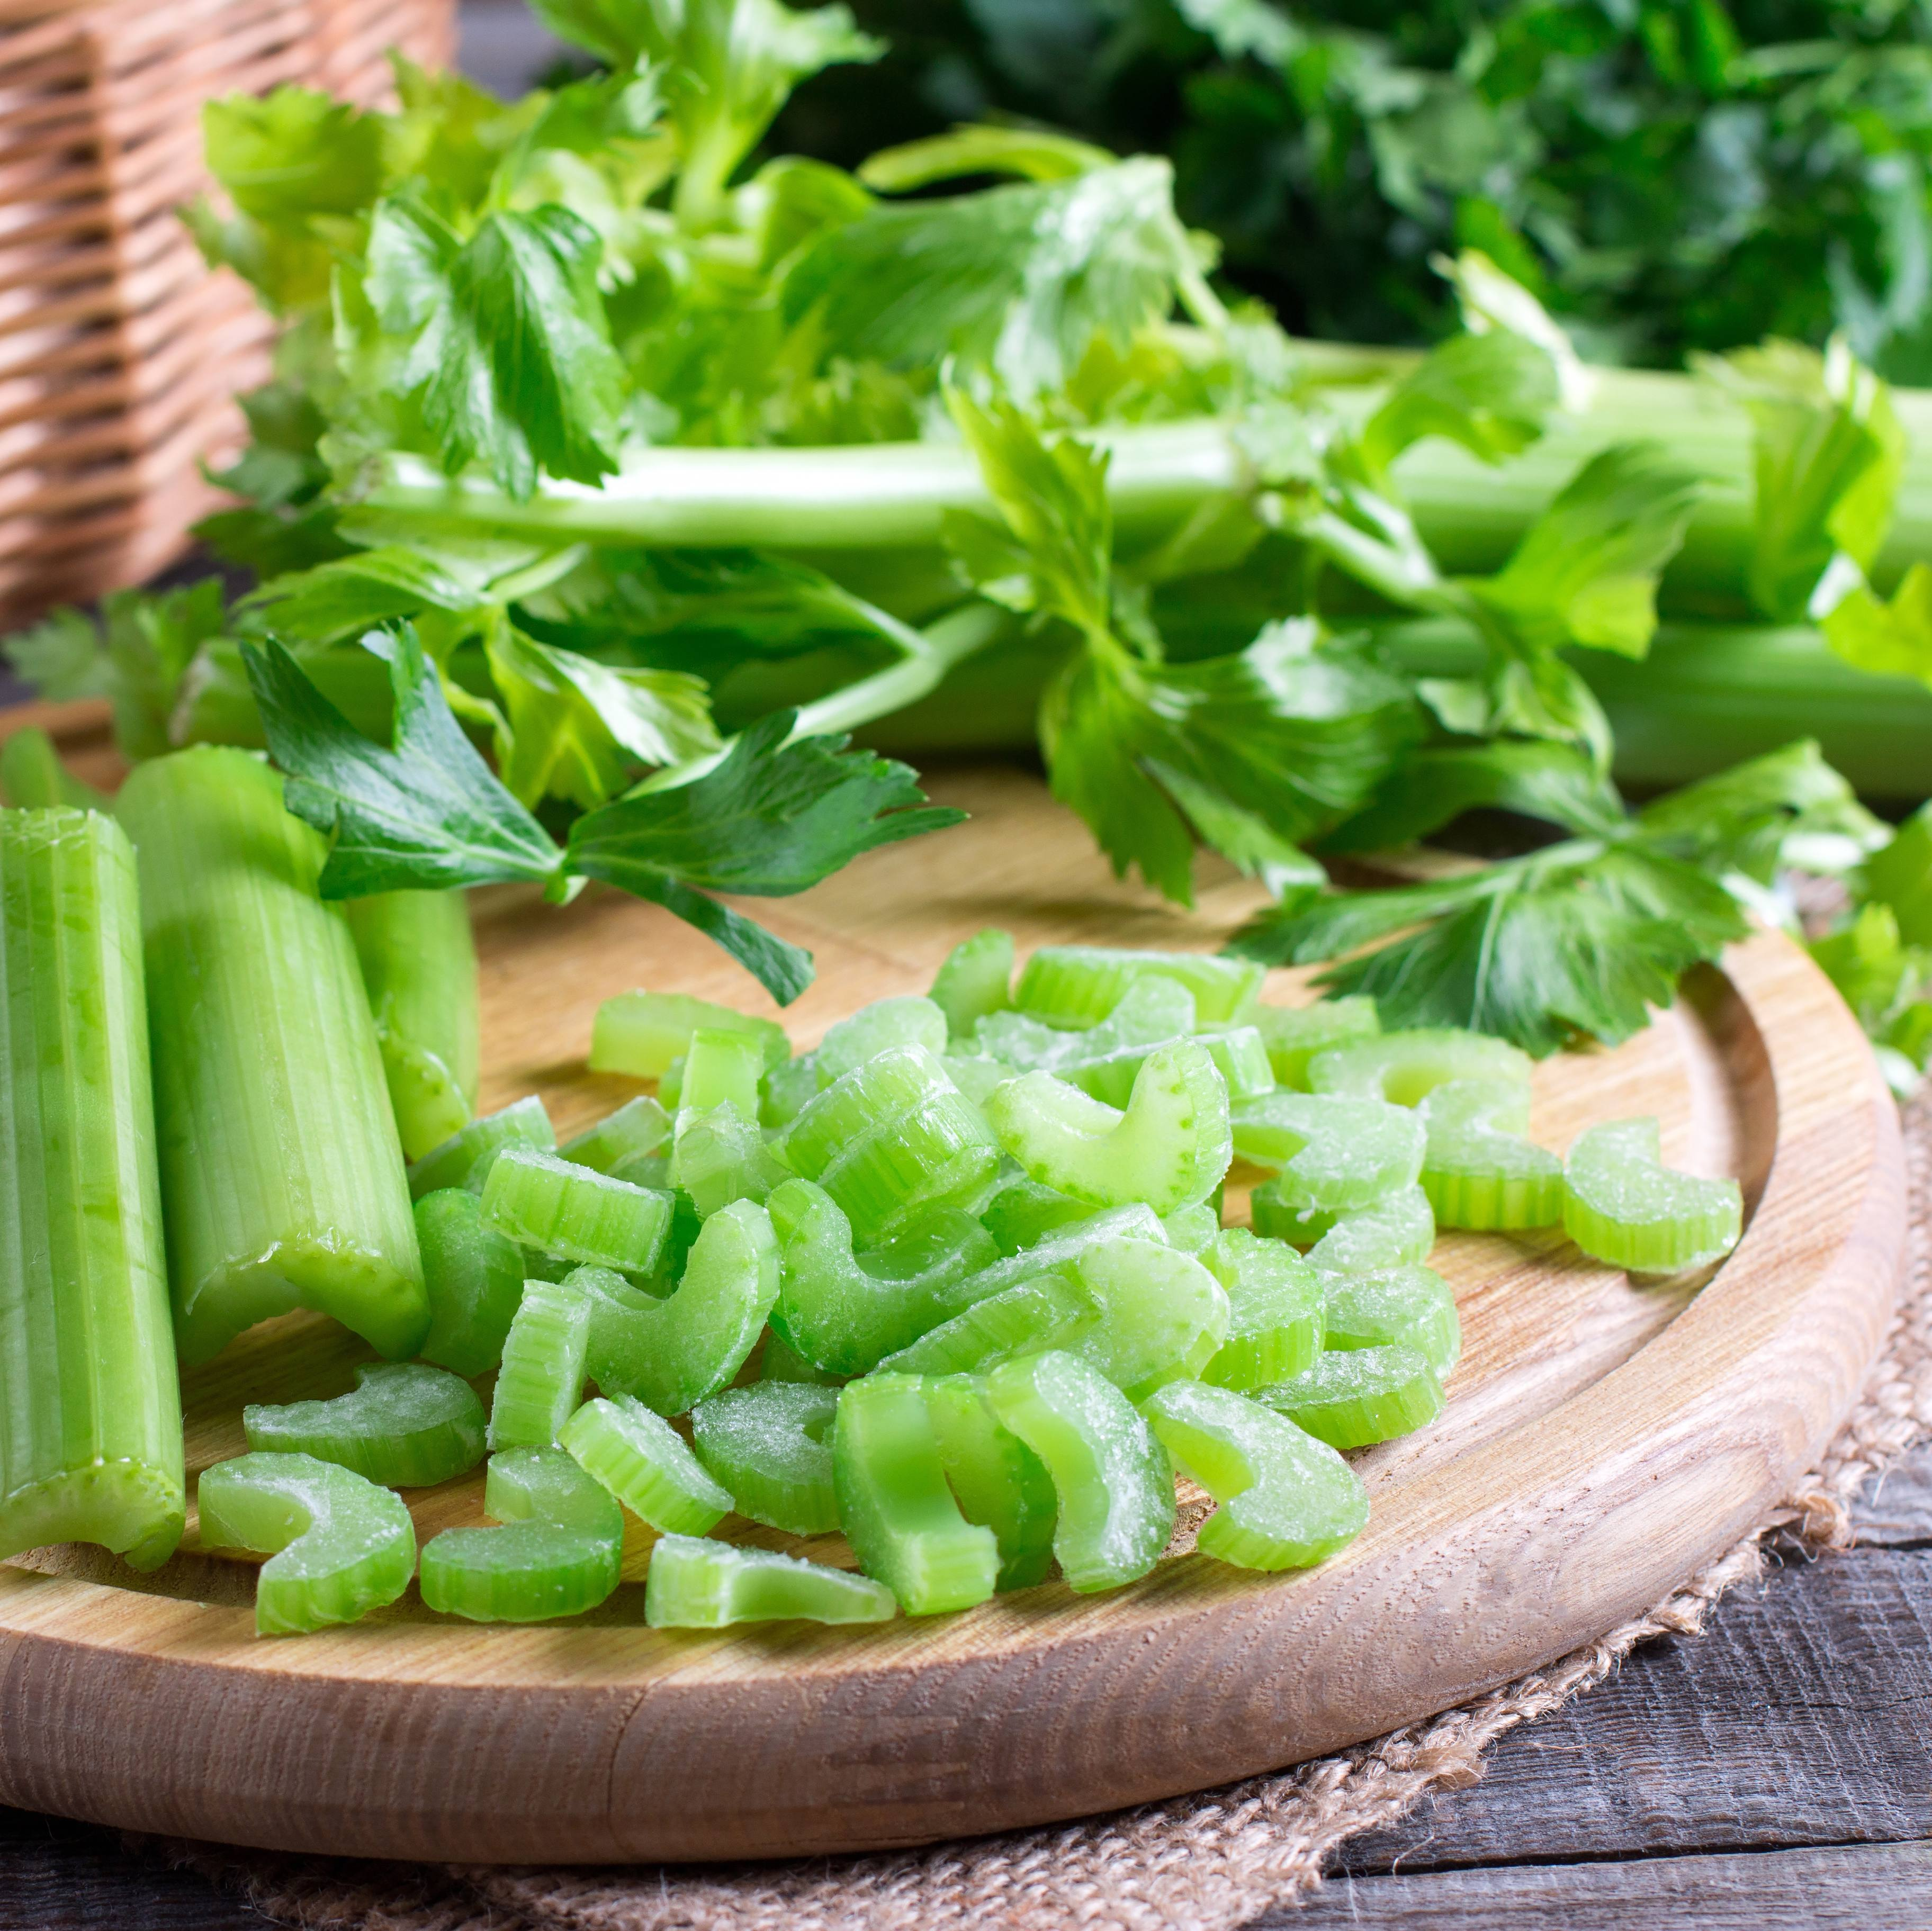 chopped up stalks of celerey on a wooden platter, perhaps on a kitchen table with other vegetables